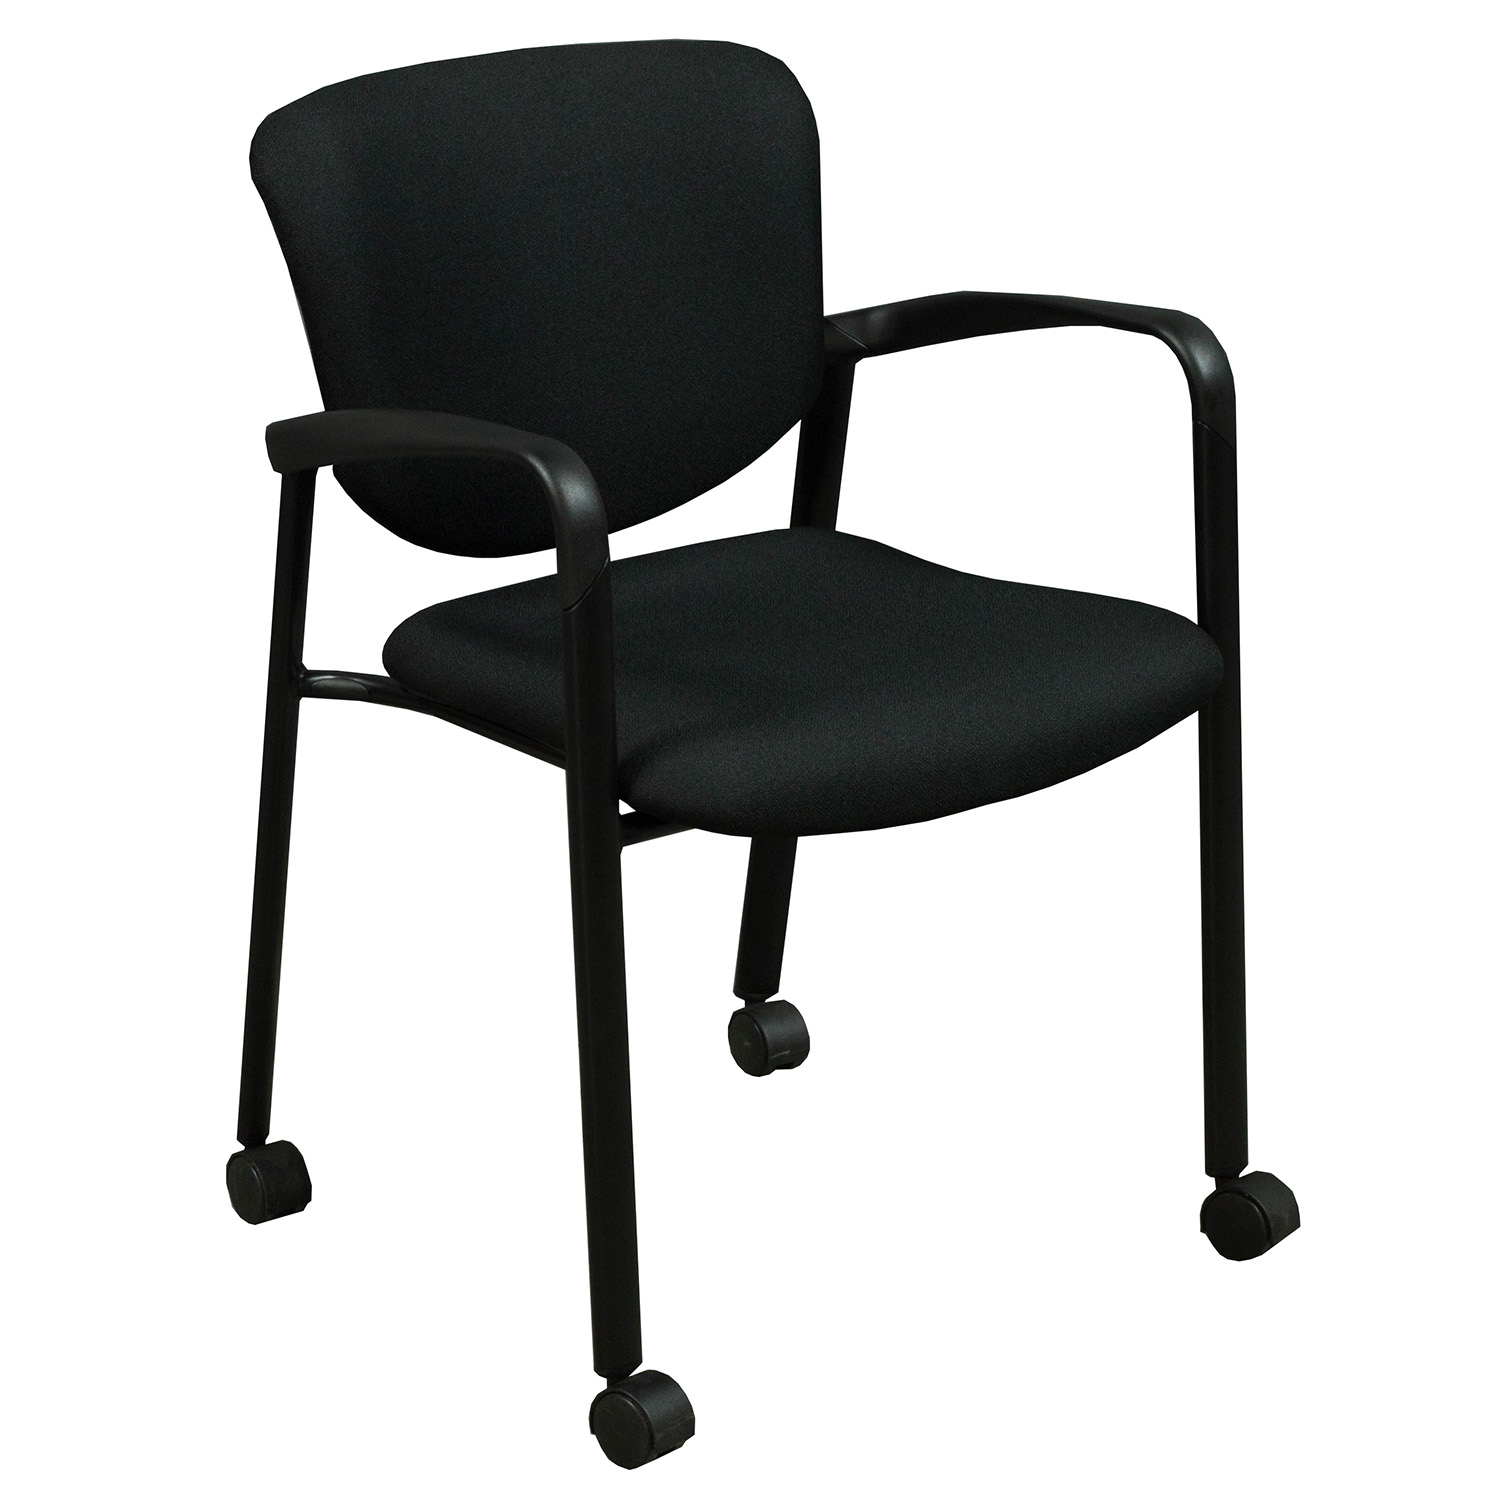 Haworth Improv Used Mobile Stack Chair, Black